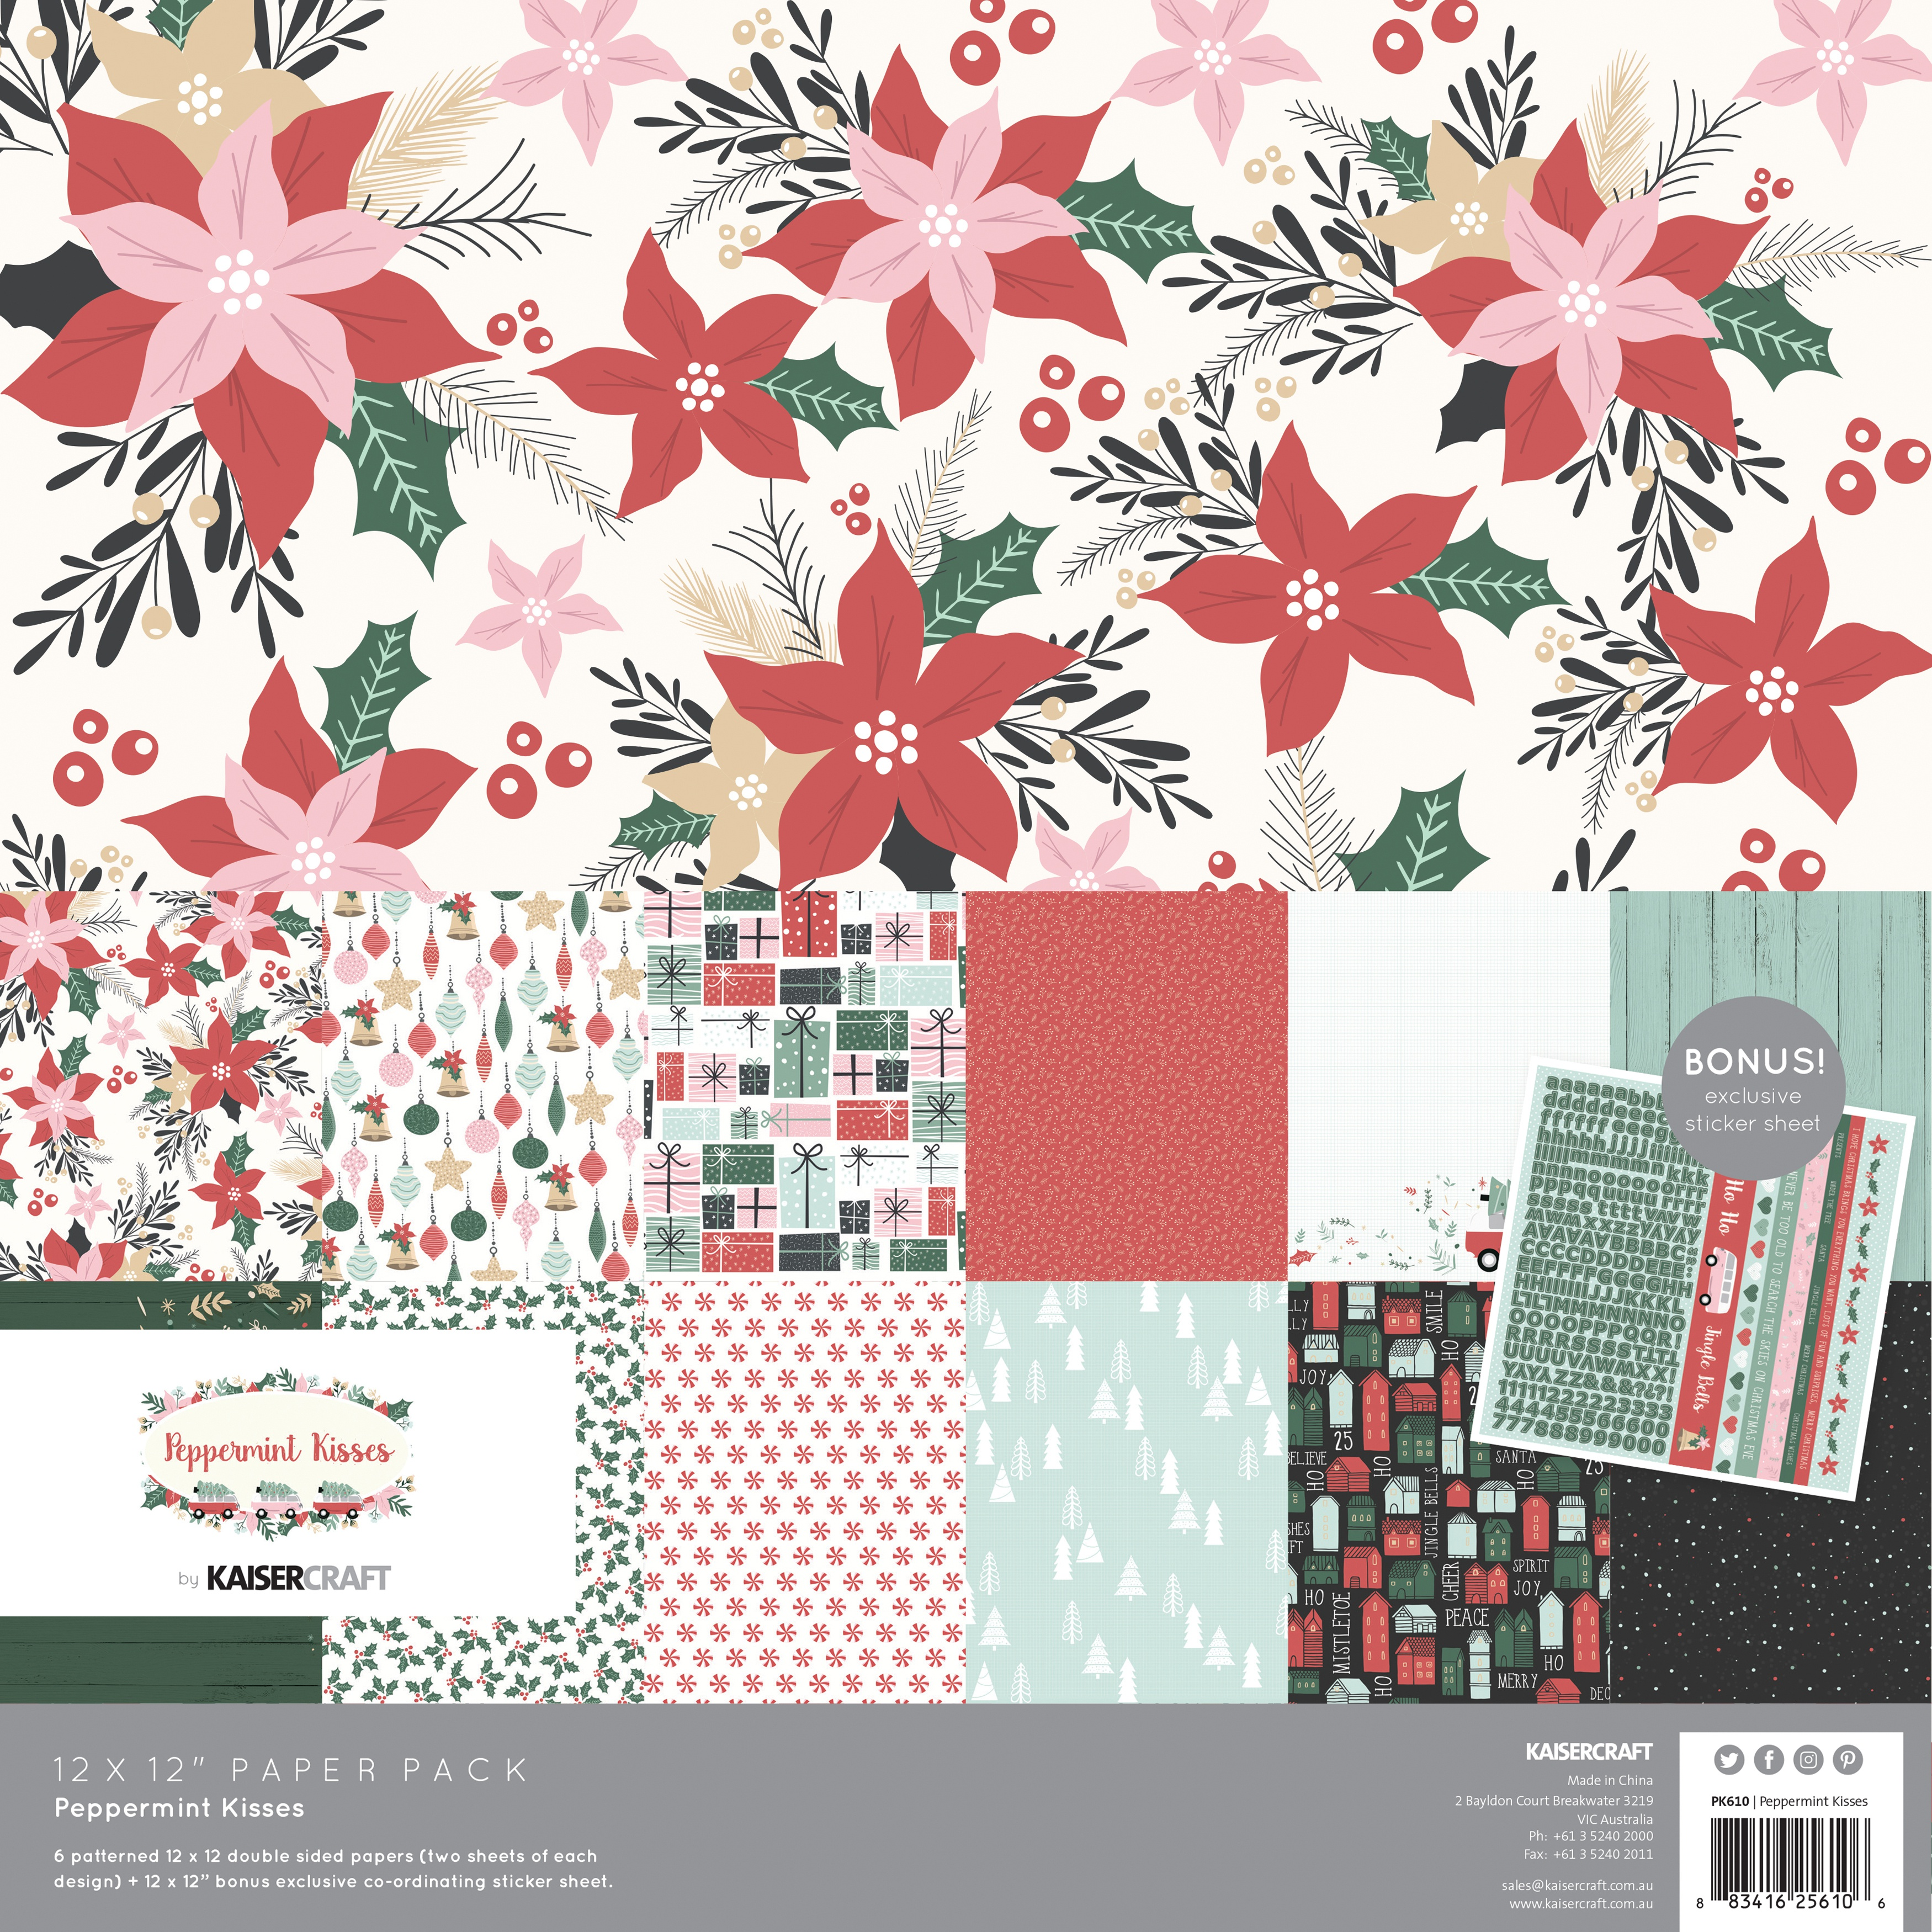 Peppermint Kisses - Paper Pack